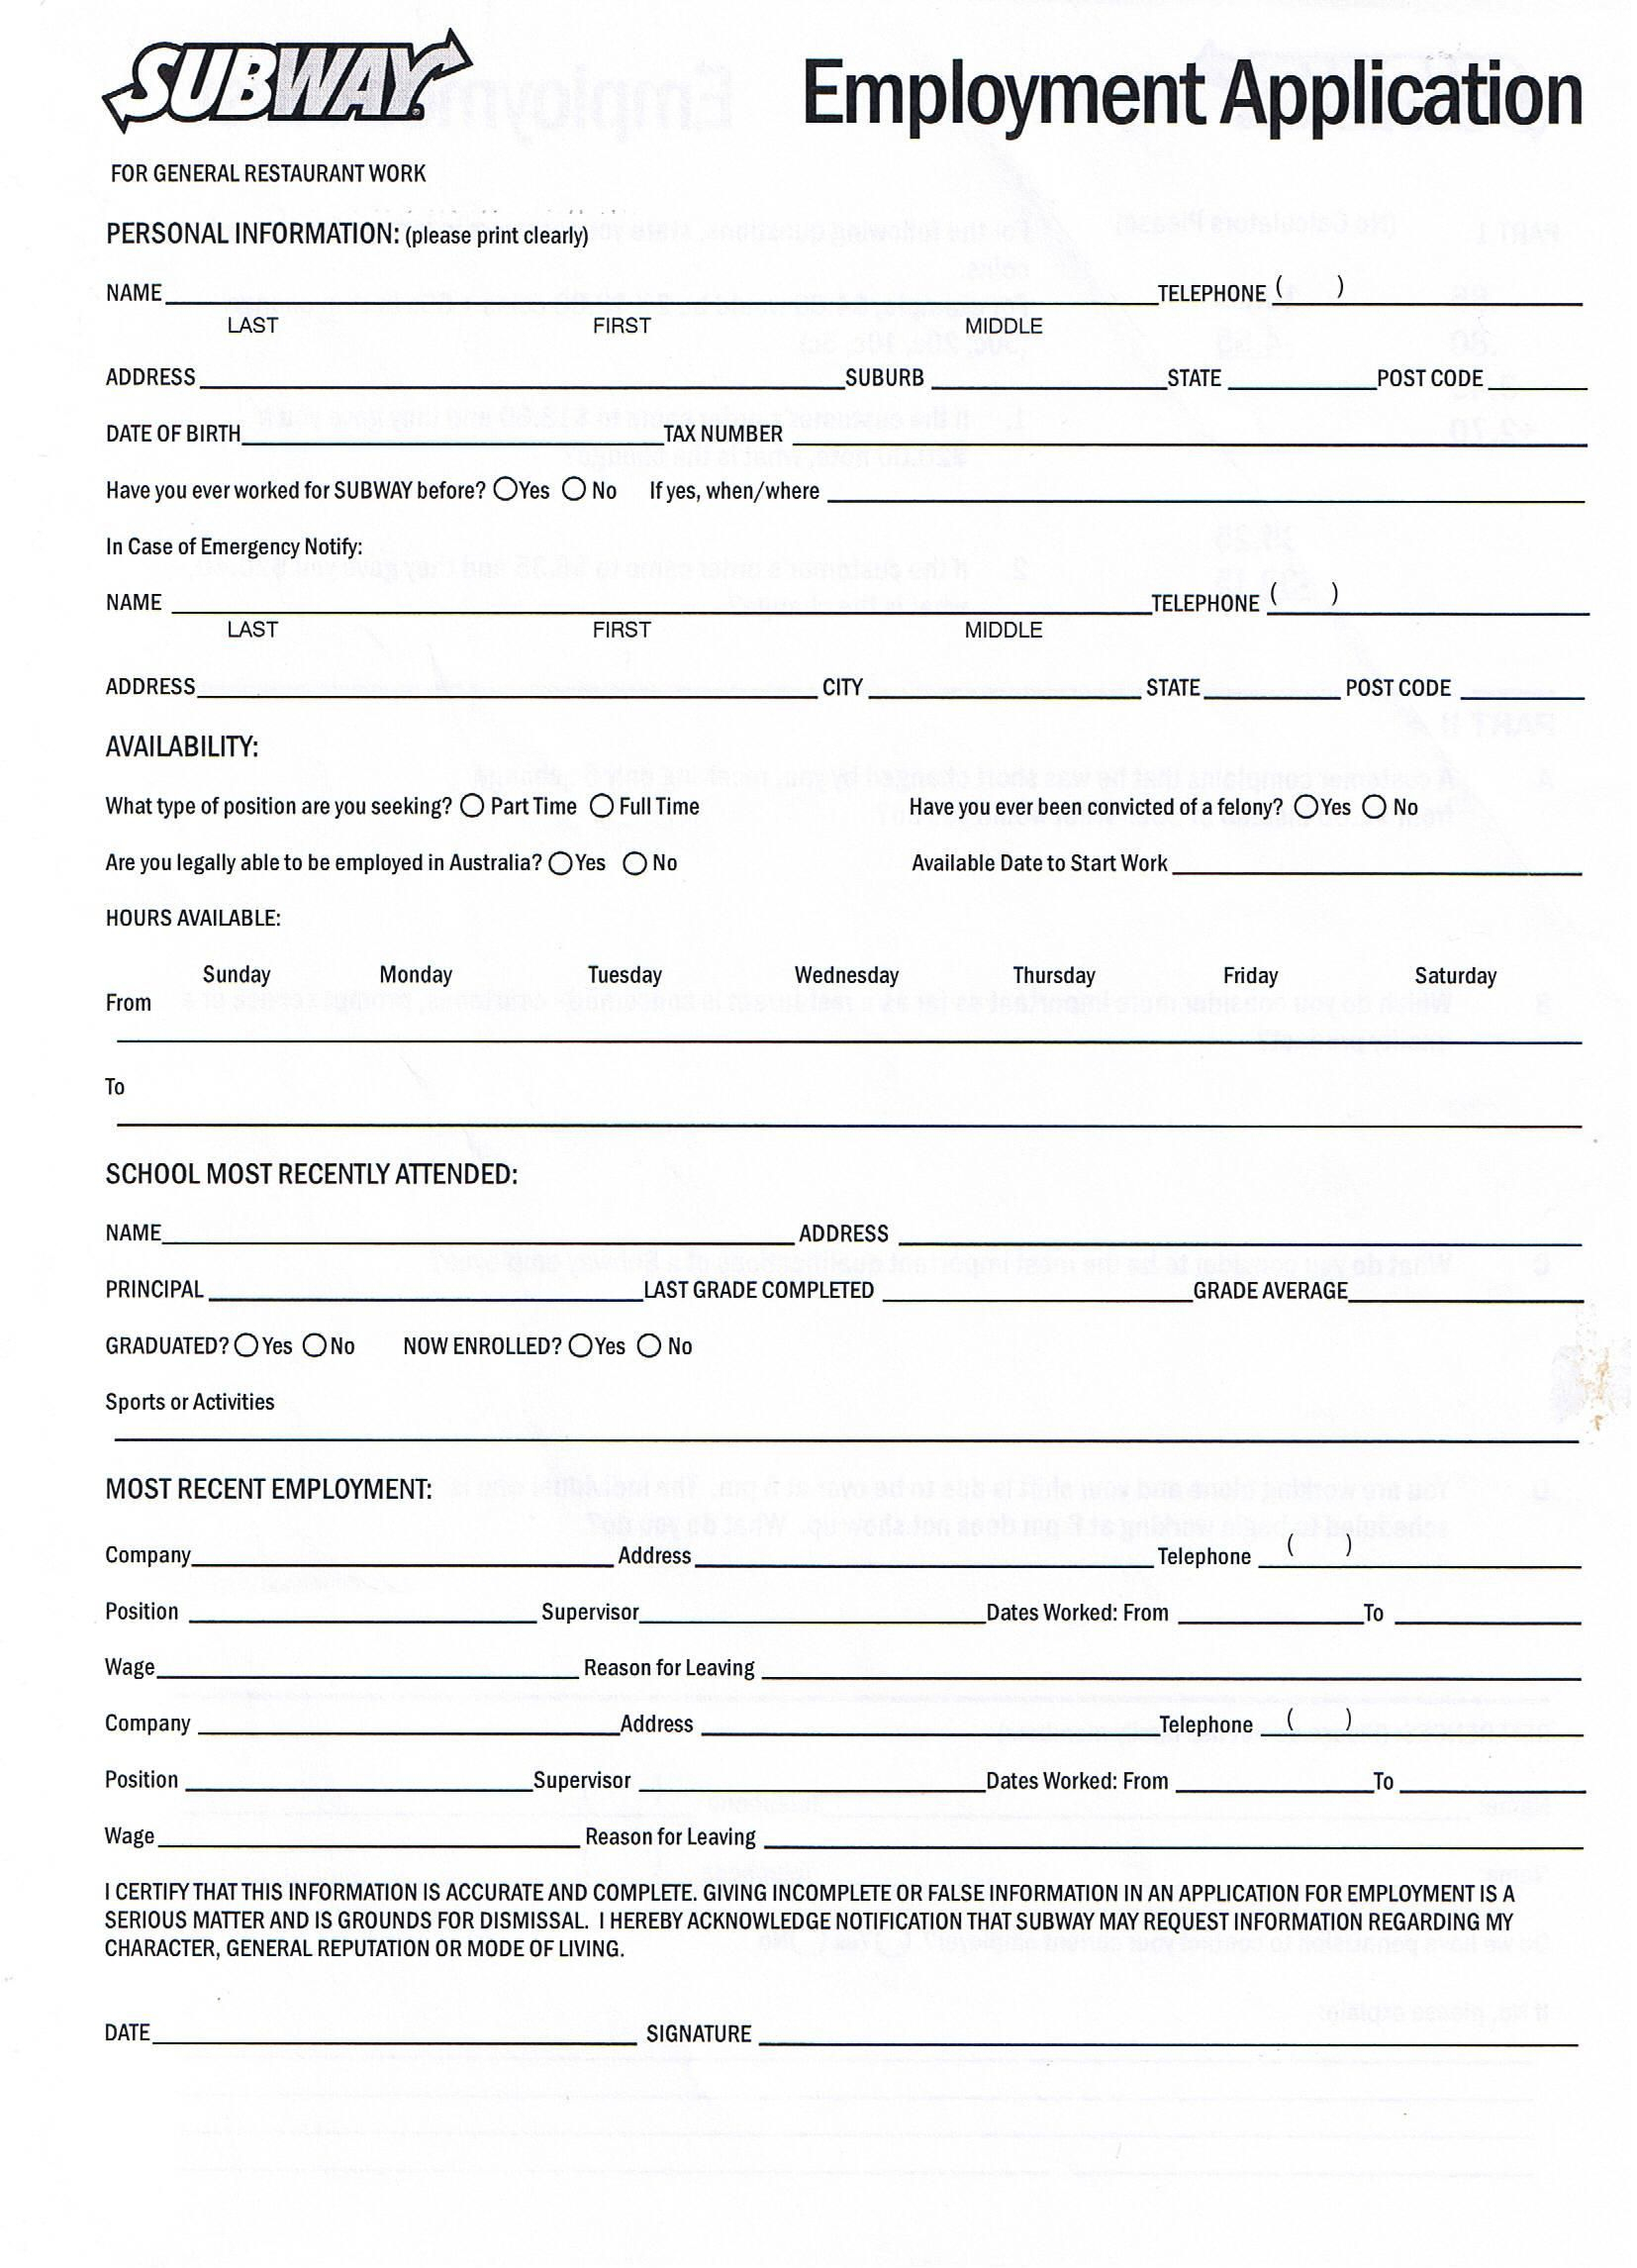 Printable Job Application Forms Online Forms, Download And Print - Free Printable Job Applications Online